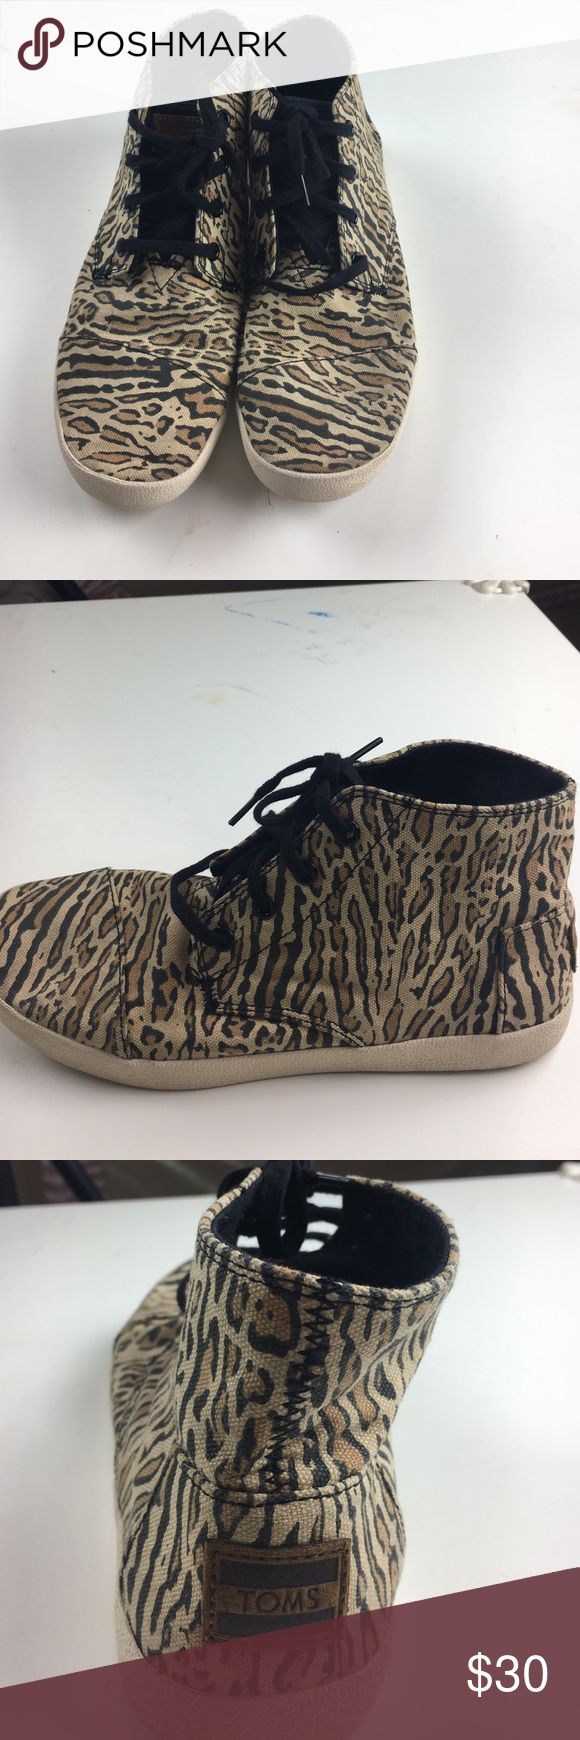 Cheetah print high tops Cheetah print high tops worn twice in great condition TOMS Shoes Sneakers